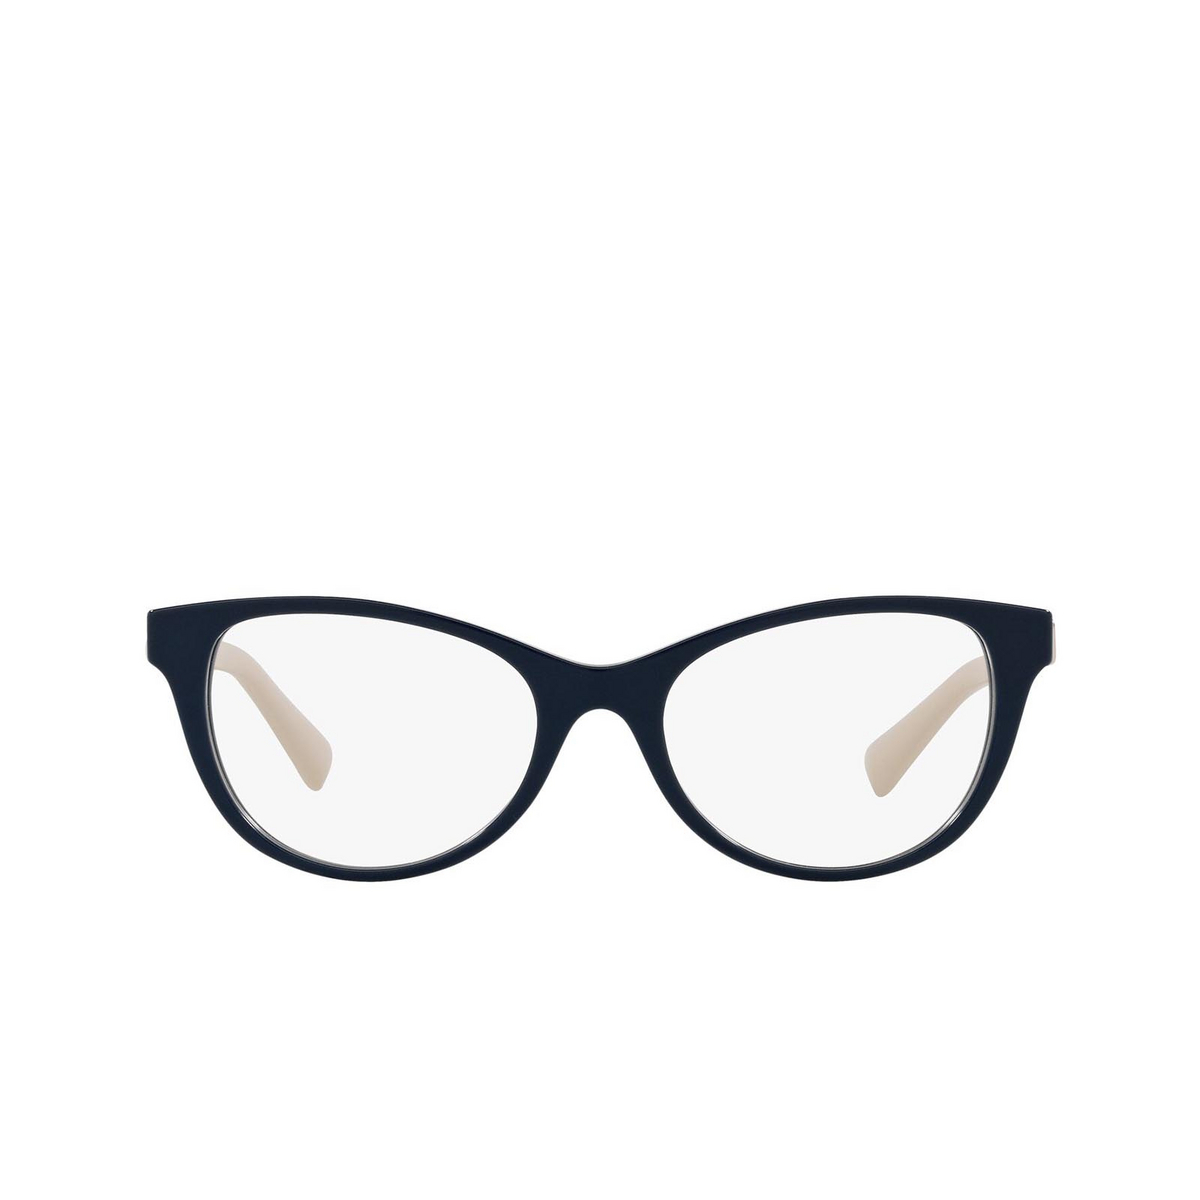 Valentino® Oval Eyeglasses: VA3057 color Blue 5034 - front view.